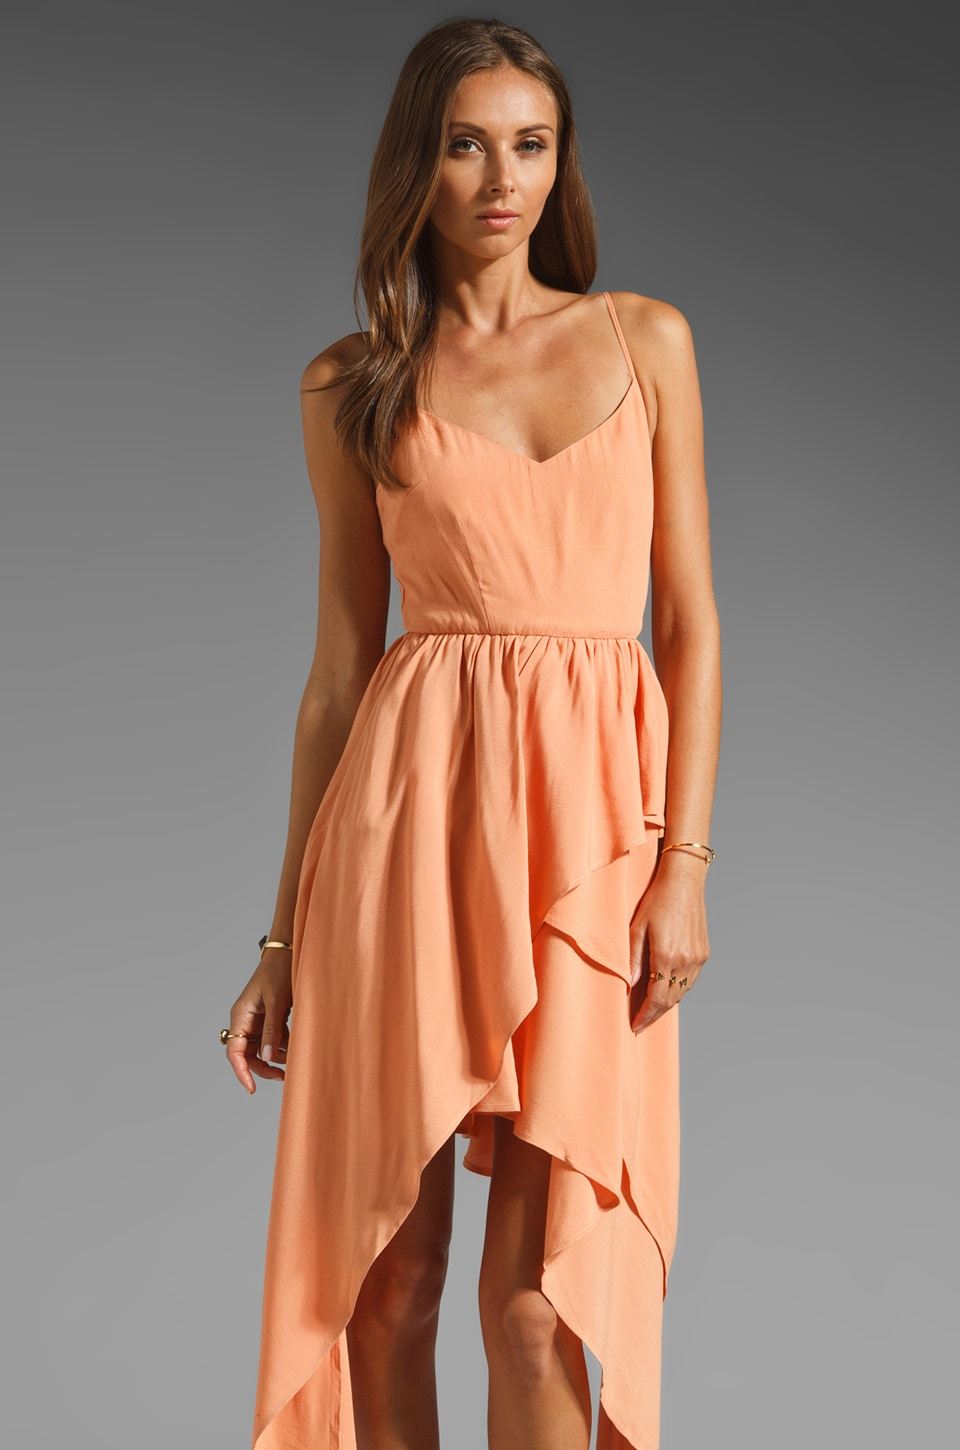 keepsake Mine is Yours Dress in Apricot